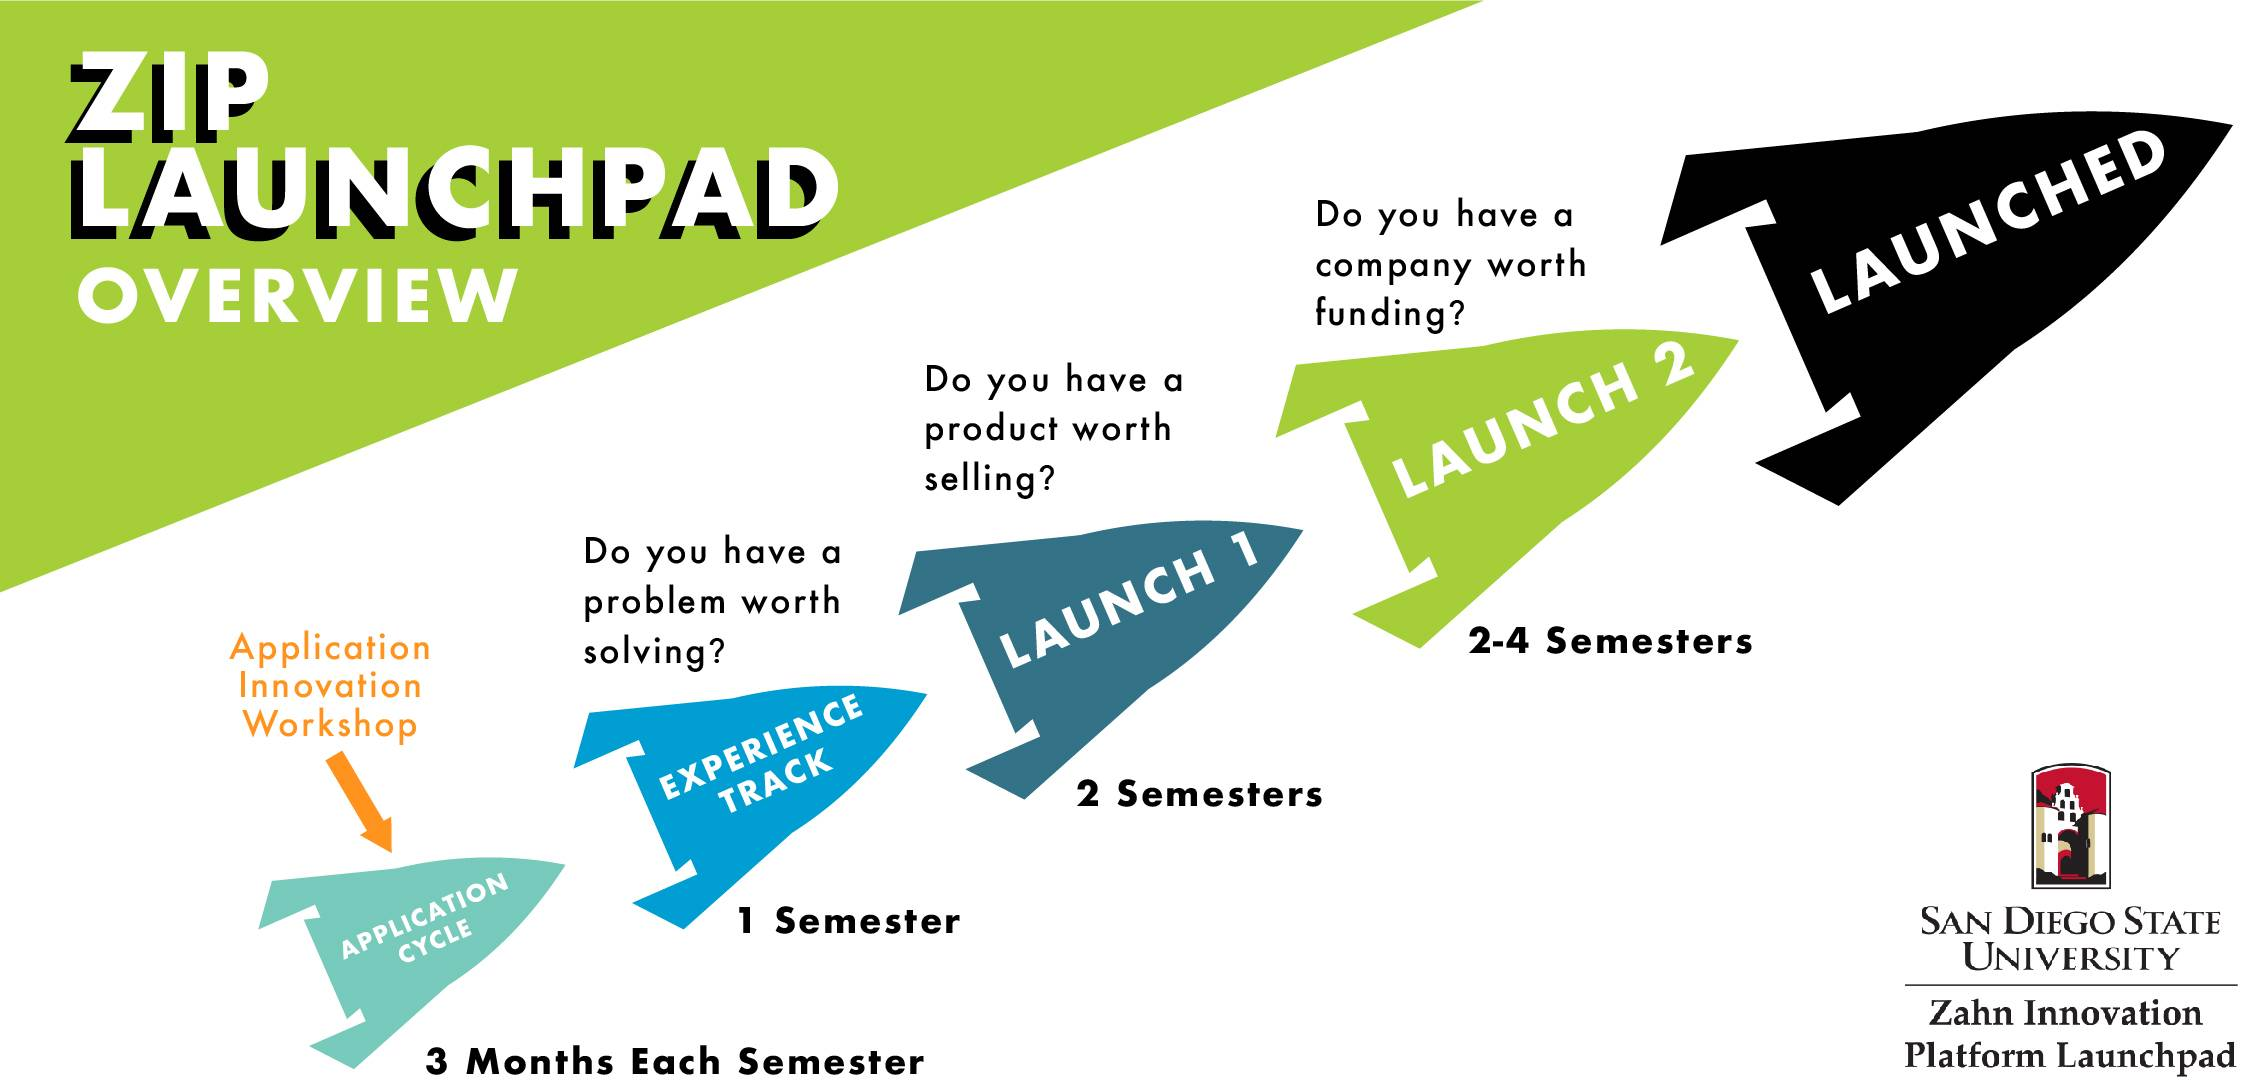 ZIP Launchpad Overview Infographic